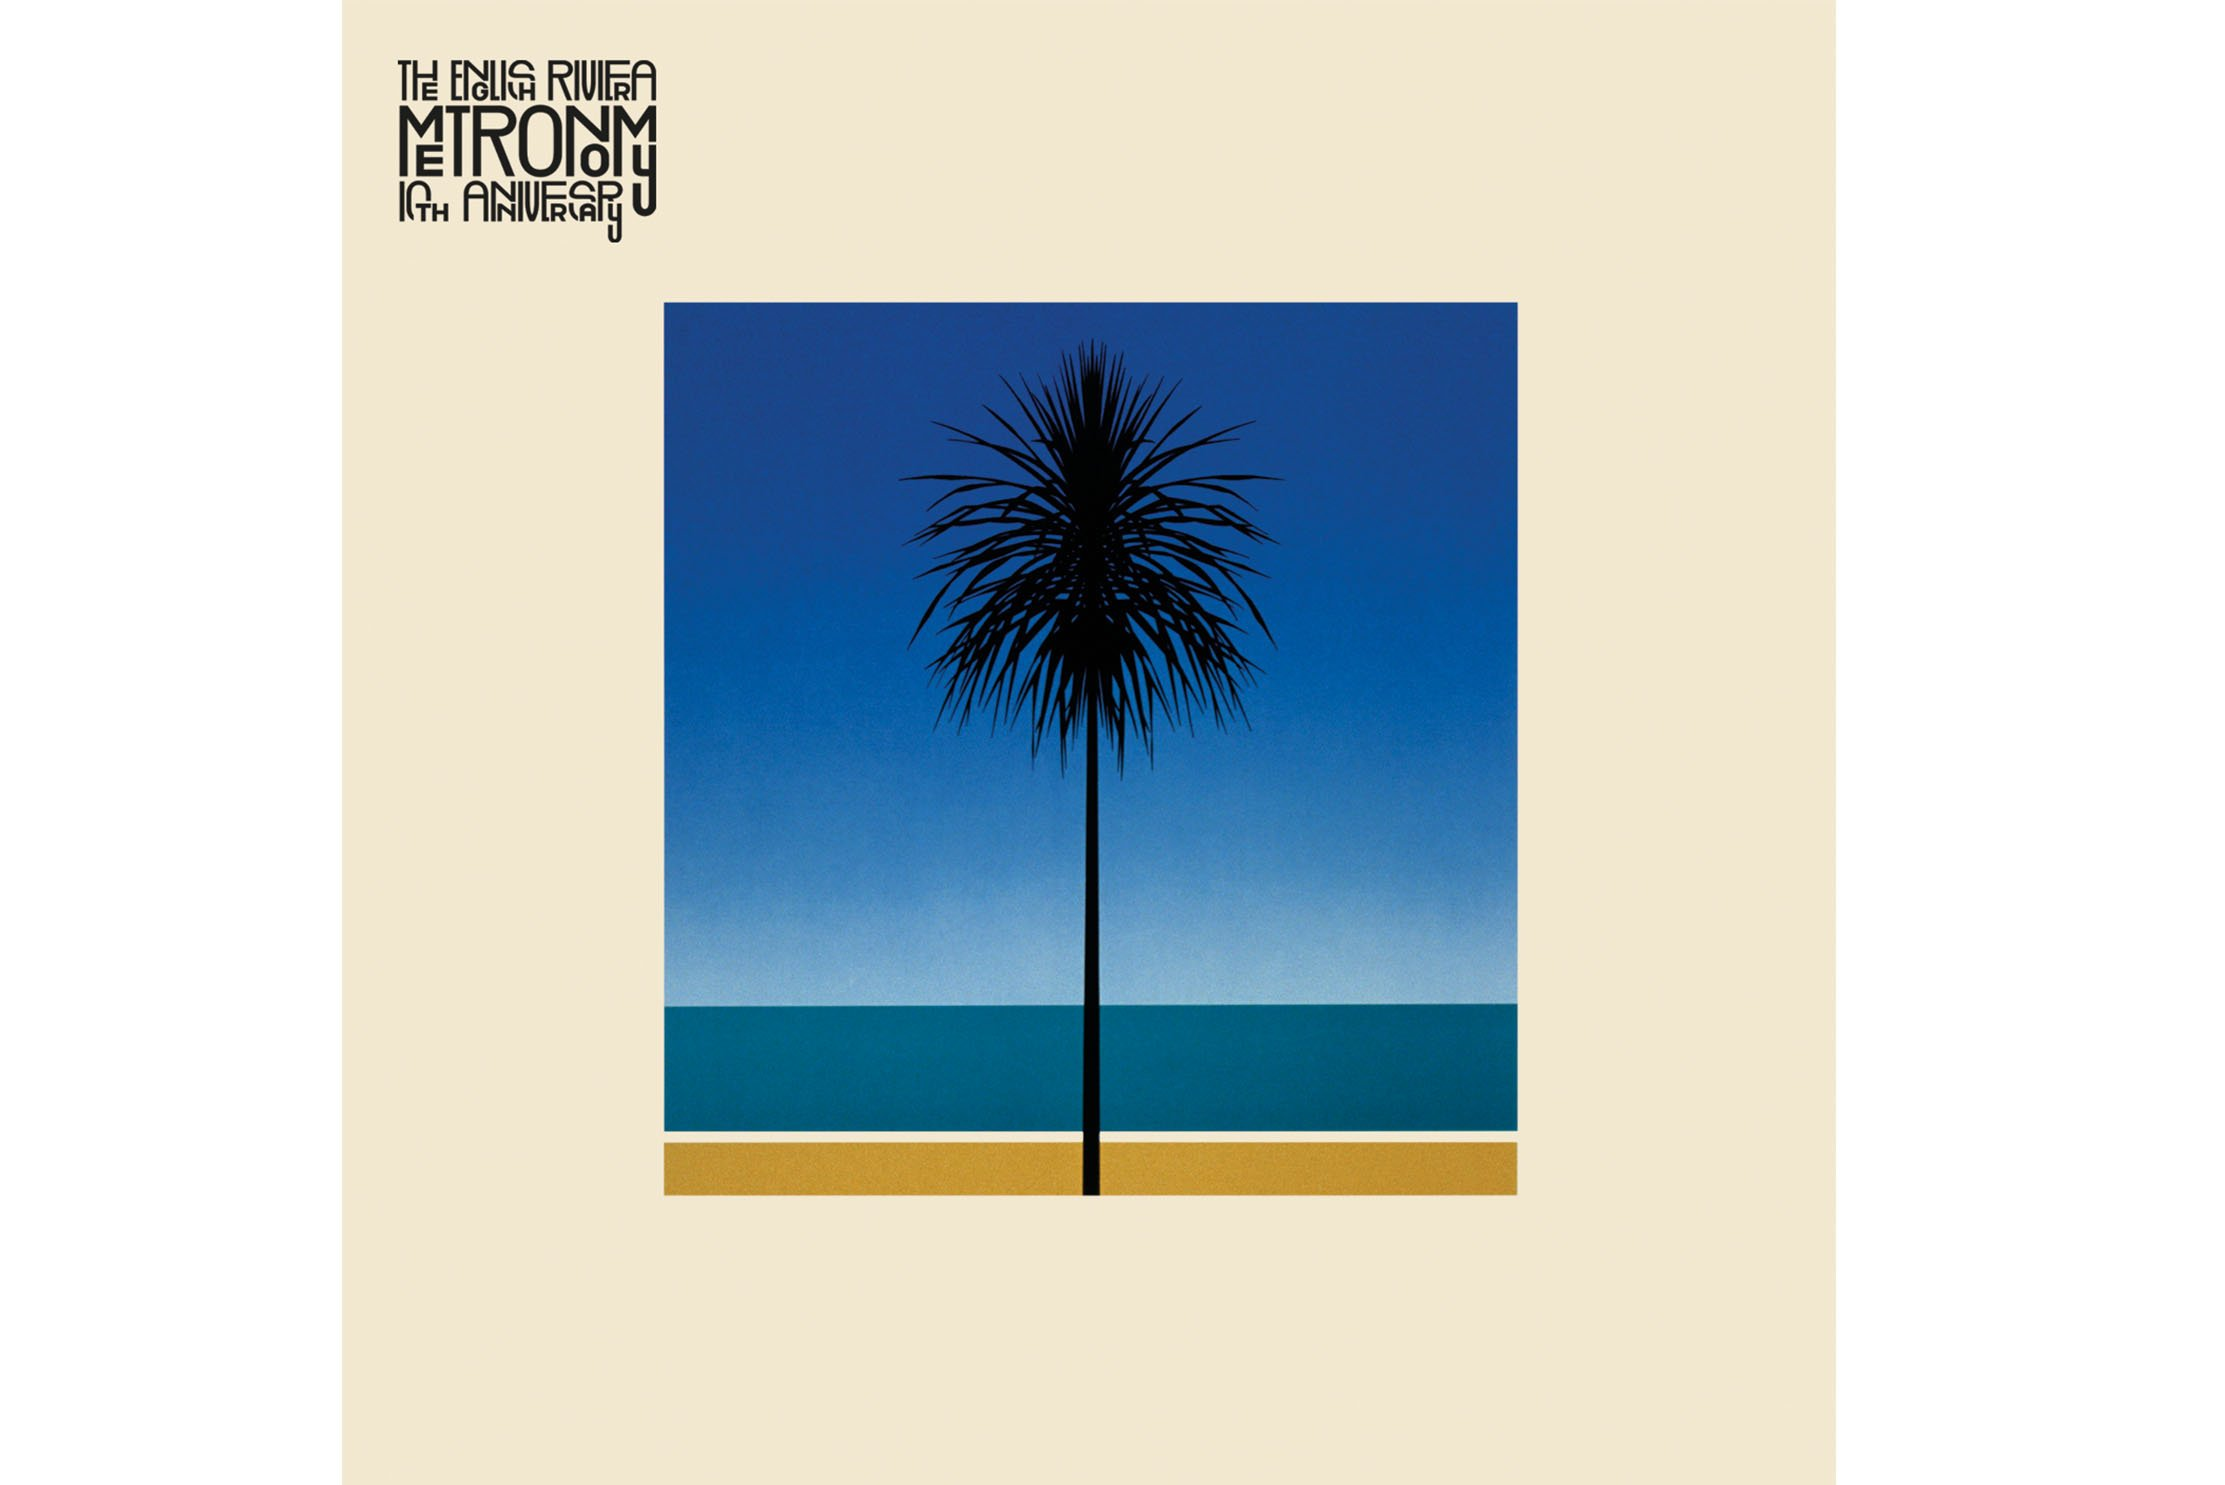 Metronomy are celebrating the 10th anniversary of their landmark The English Riviera album, with a special edition release